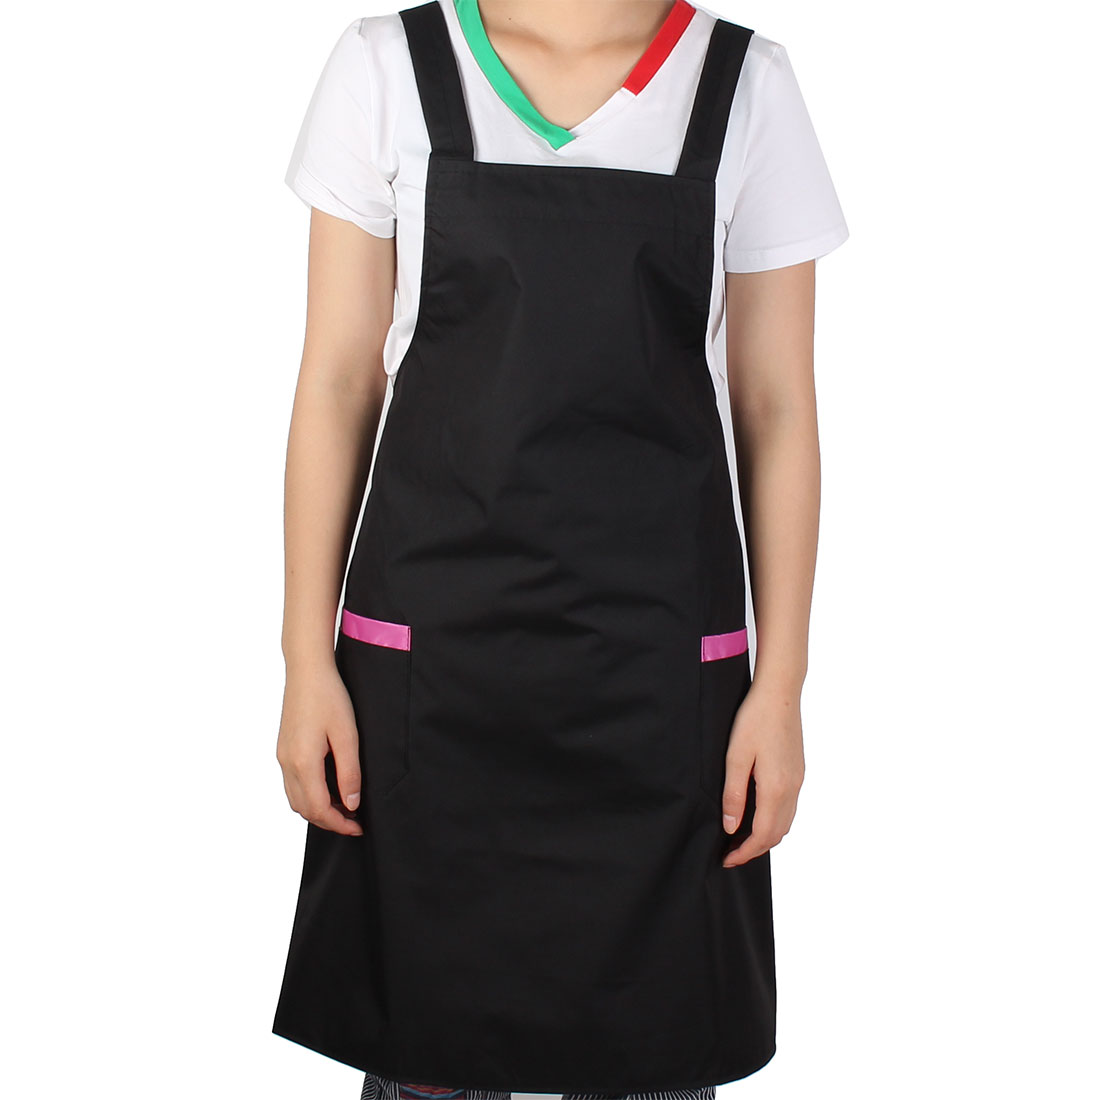 Lady Hotel Restaurant Coffee Shop Cooking Dress Pocket Apron Black Pink